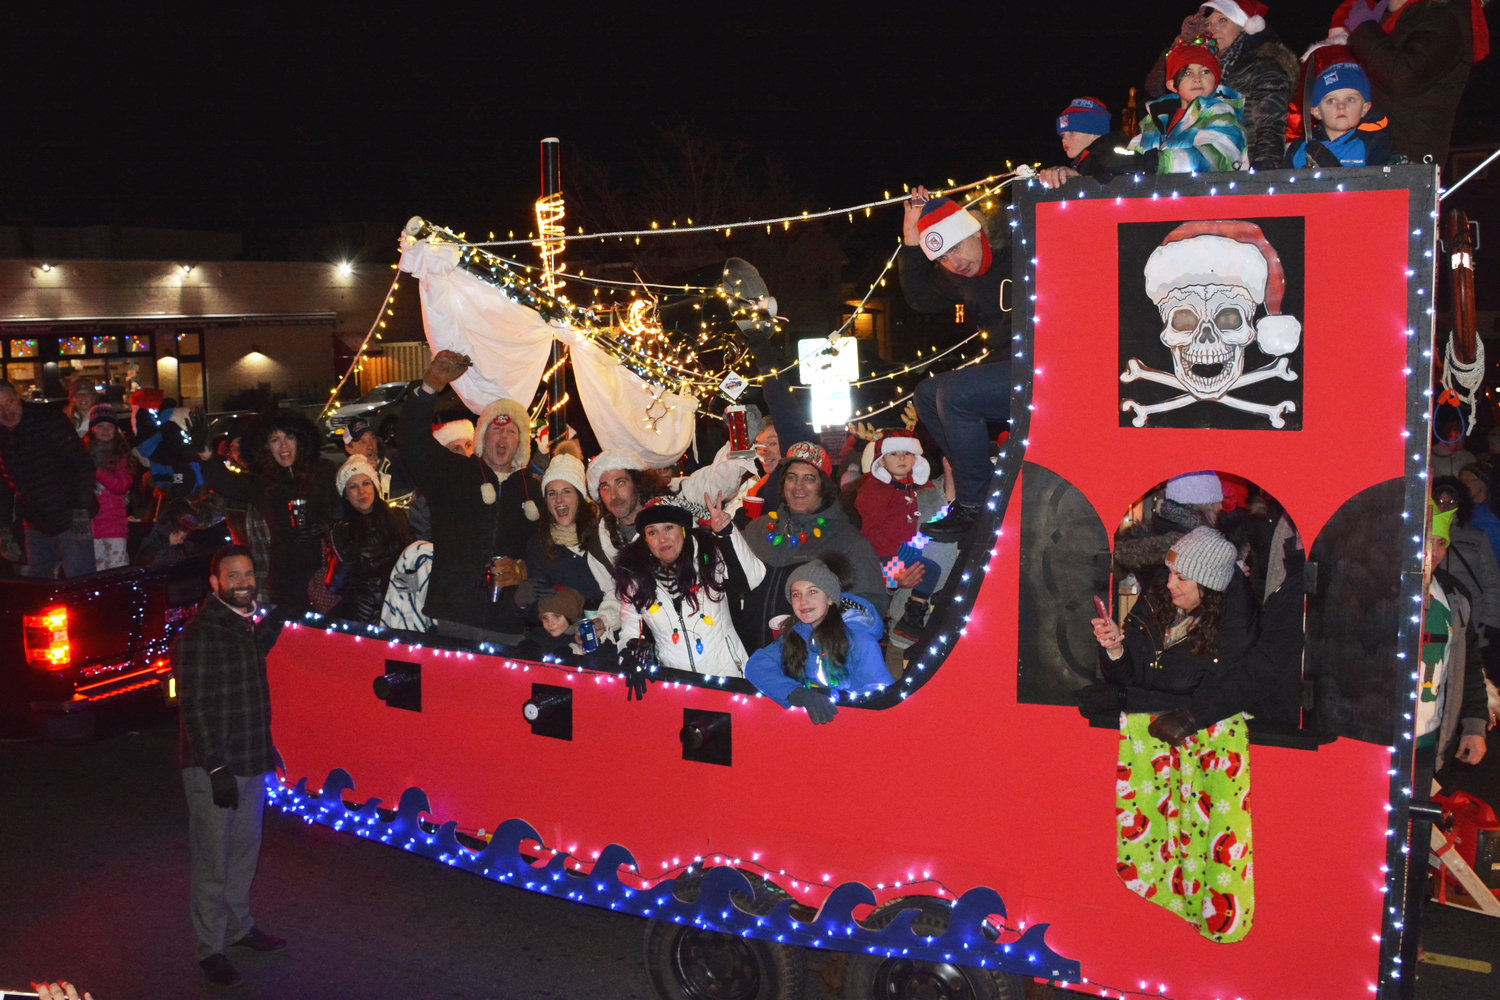 City Council President Anthony Eramo awarded the Wyoming Avenue Pirate Ship with a trophy on Saturday during the Electric Light Parade on West Beech Street, where more than 75 cars, fire trucks, floats and bikes were wrapped with thousands of lights that illuminated the West End.